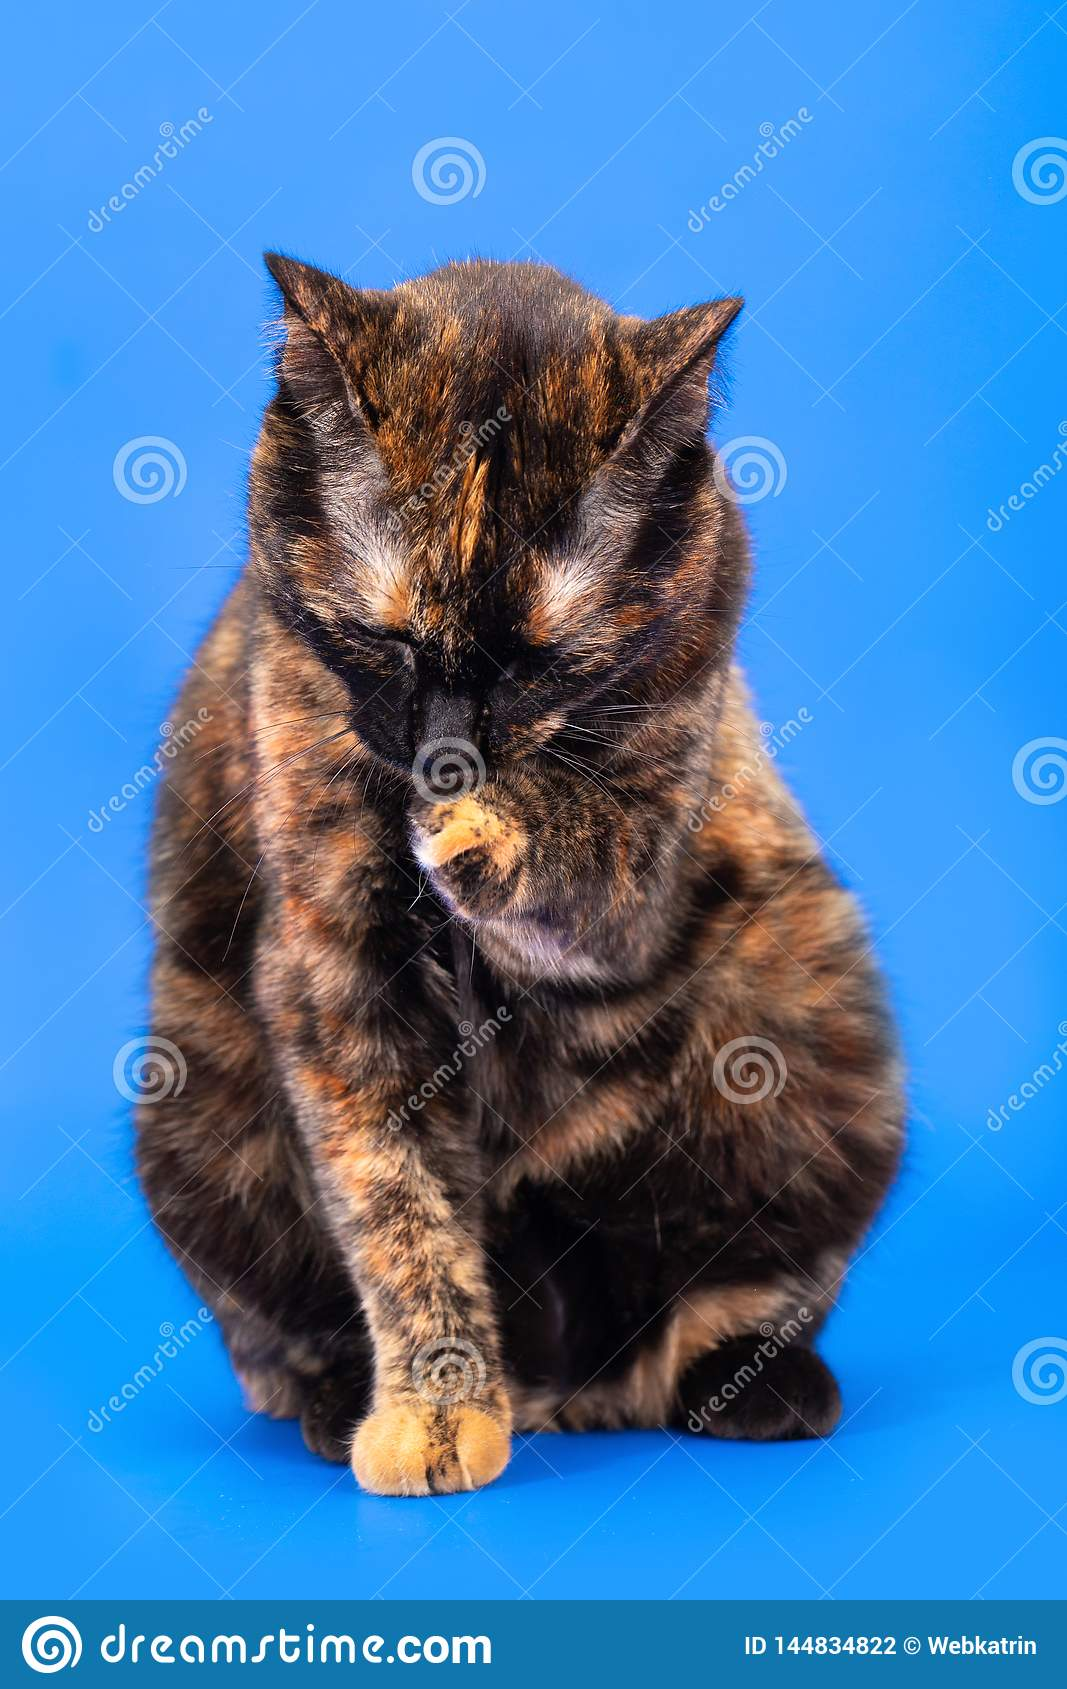 Black and red tortoiseshell cat on a blue background